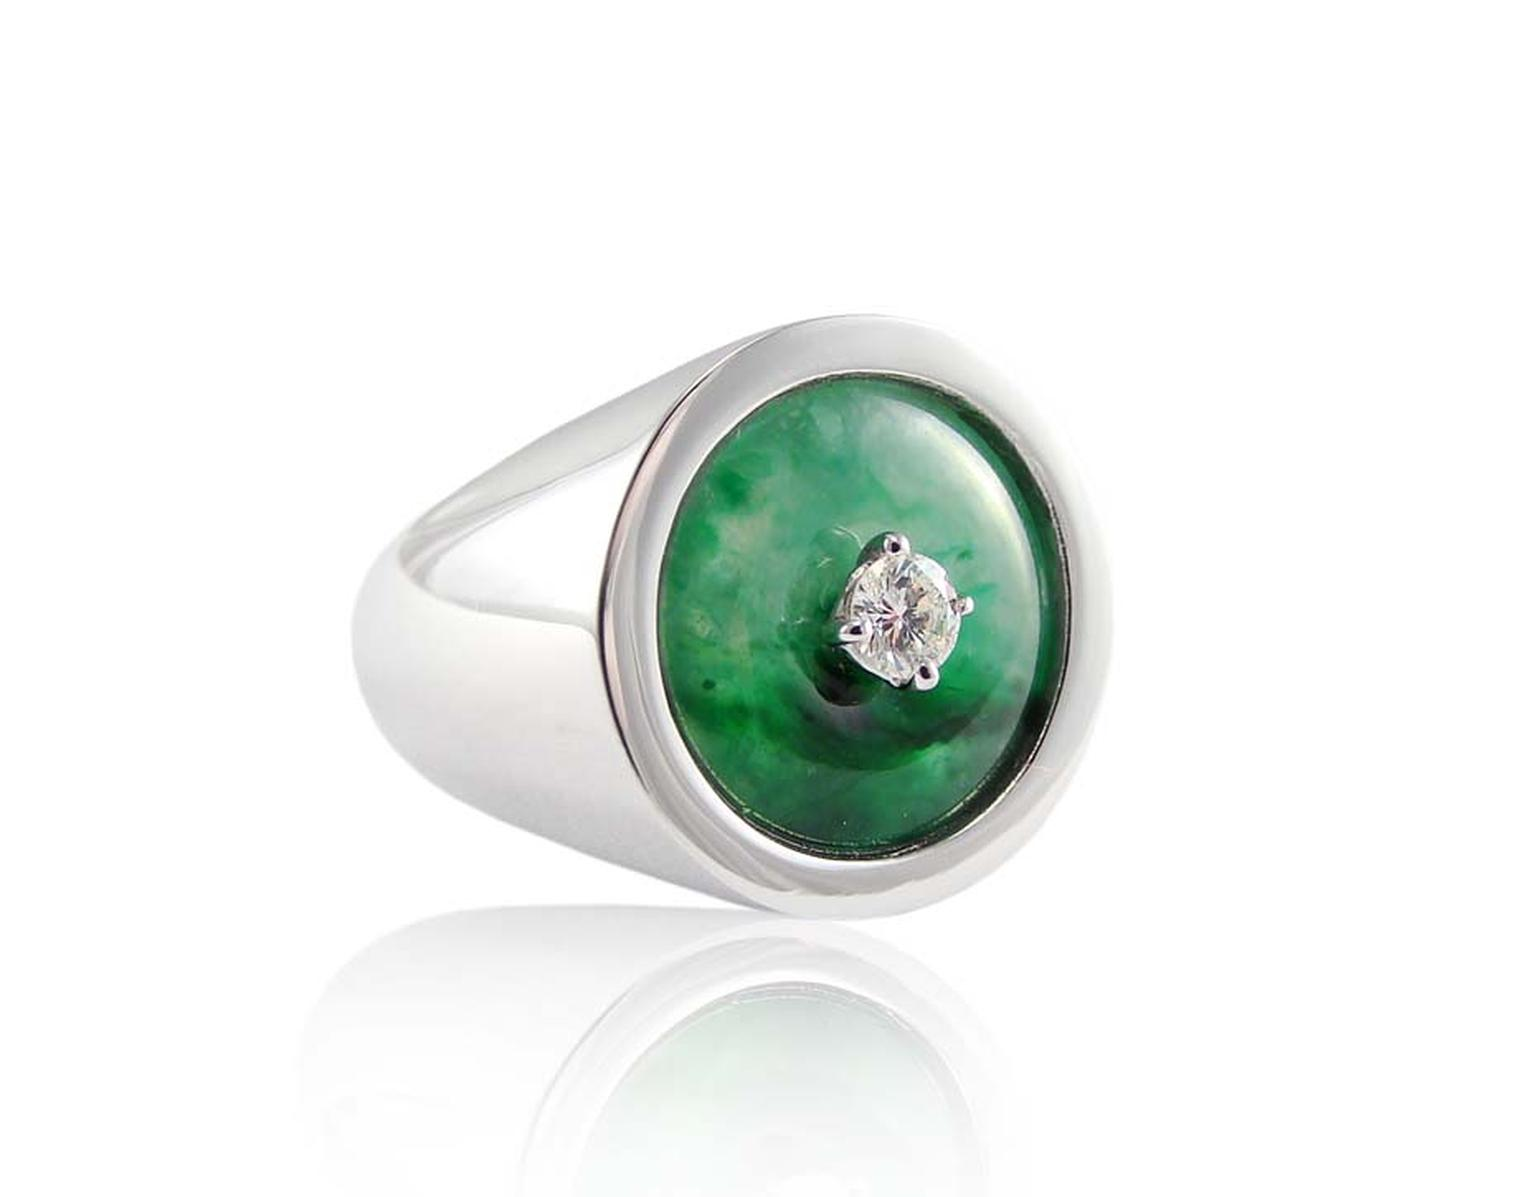 Corrado Giuspino jadeite and diamond ring.